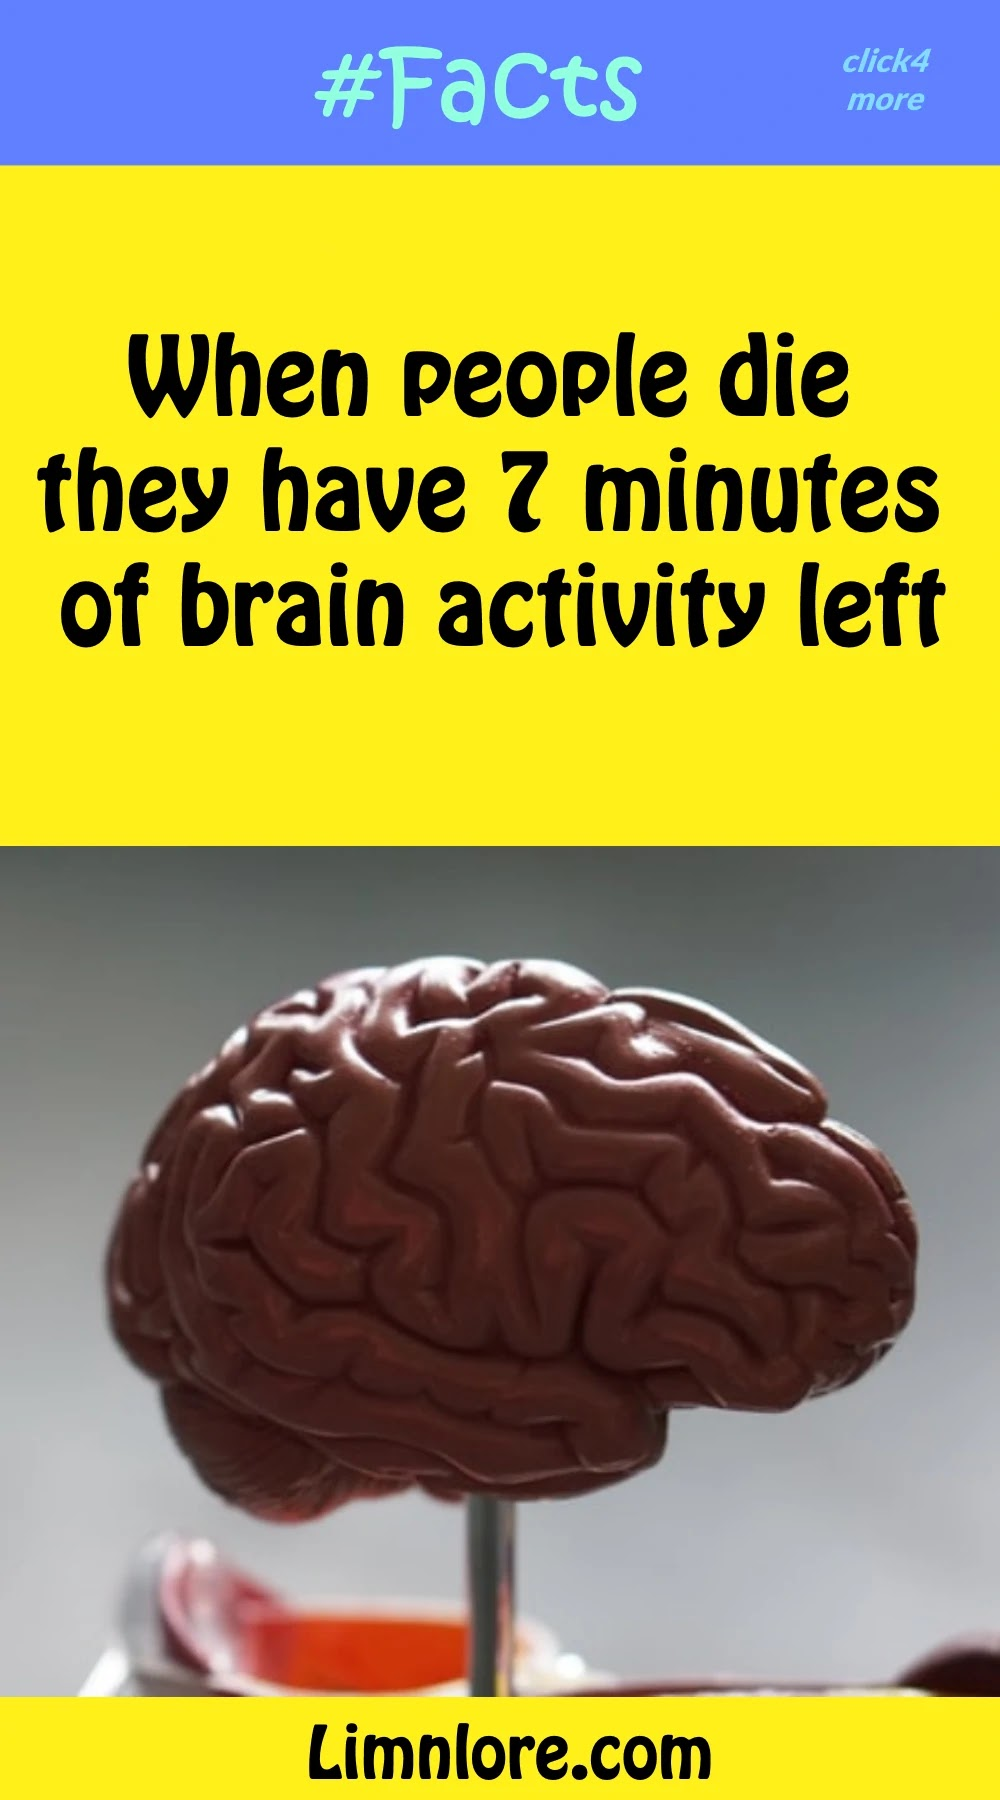 When people die they have 7 minutes of brain activity left.